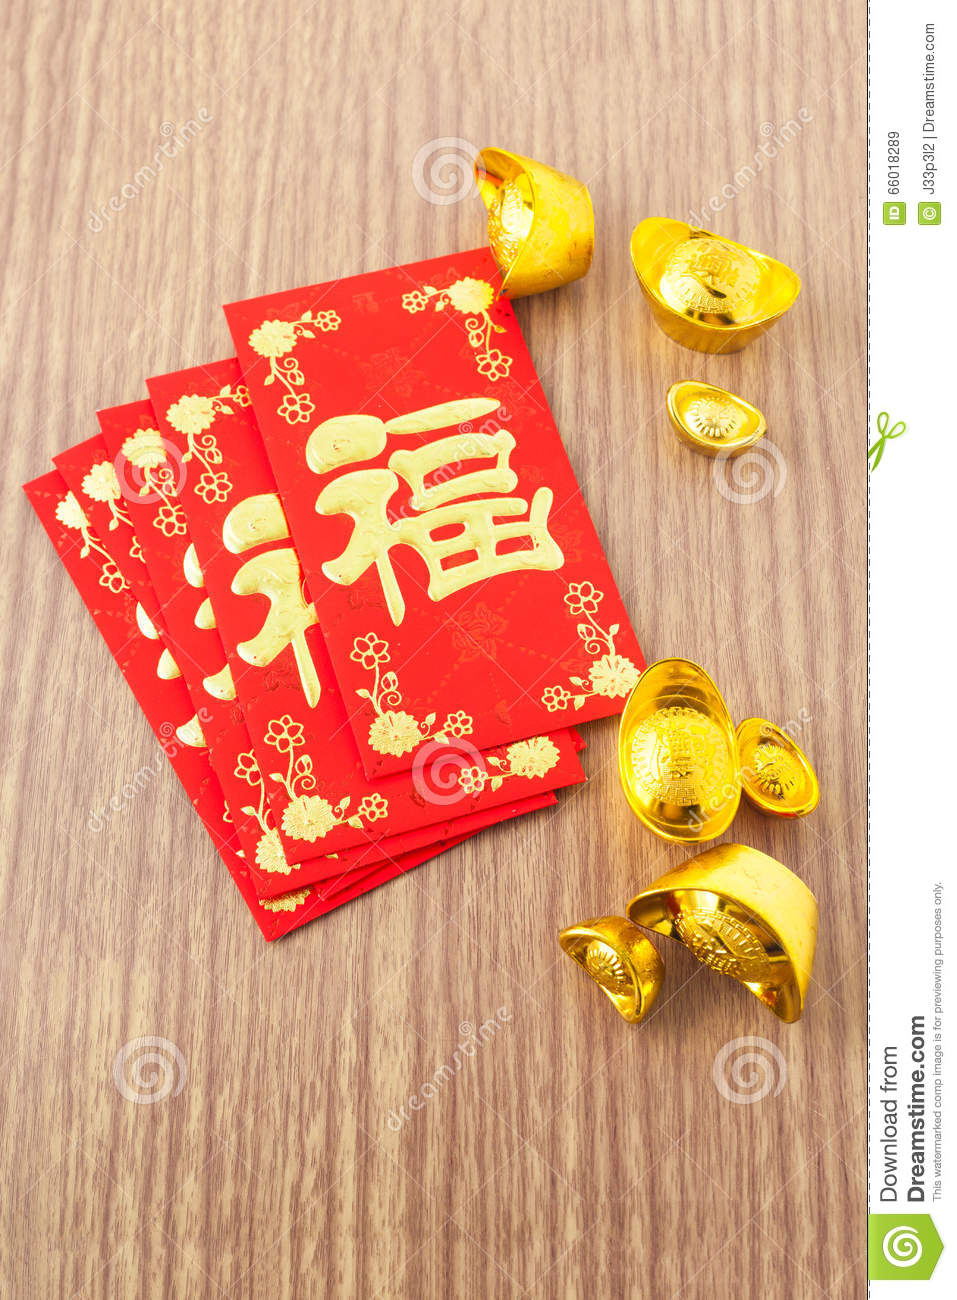 Chinese new year festival decorations on wood background for Ang pow packet decoration